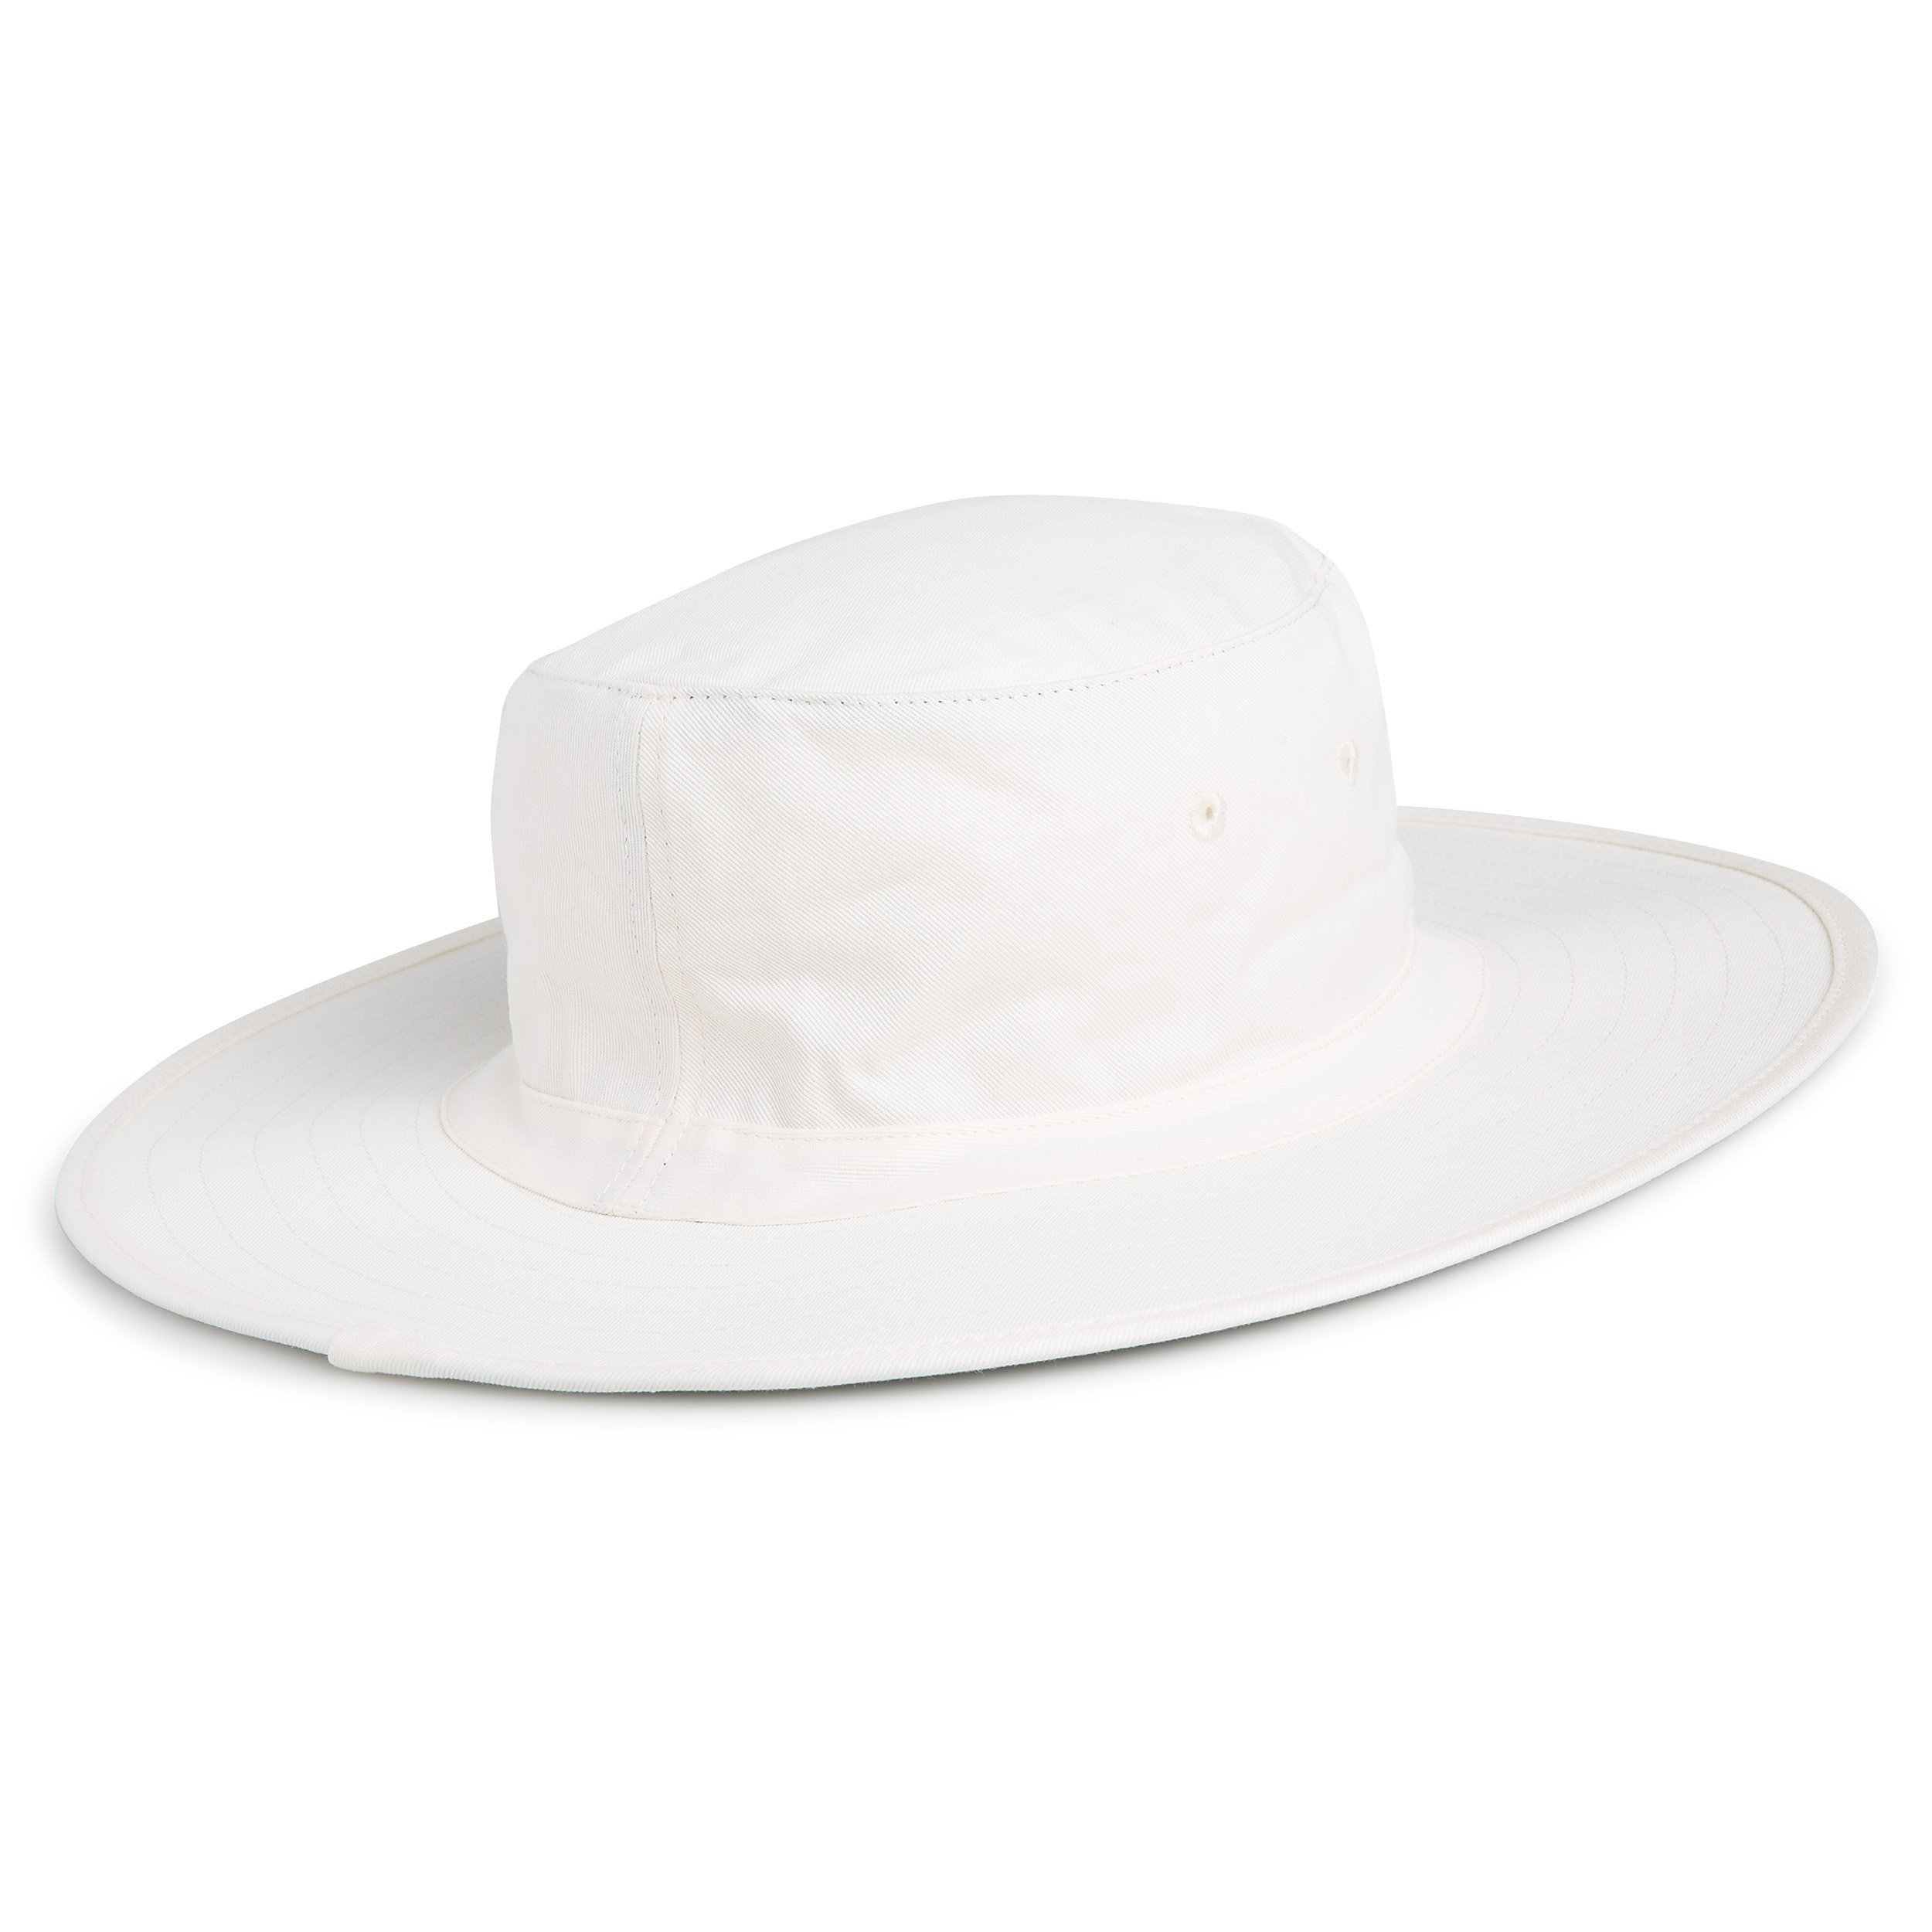 2017 New Balance England Test Cricket Sunhat